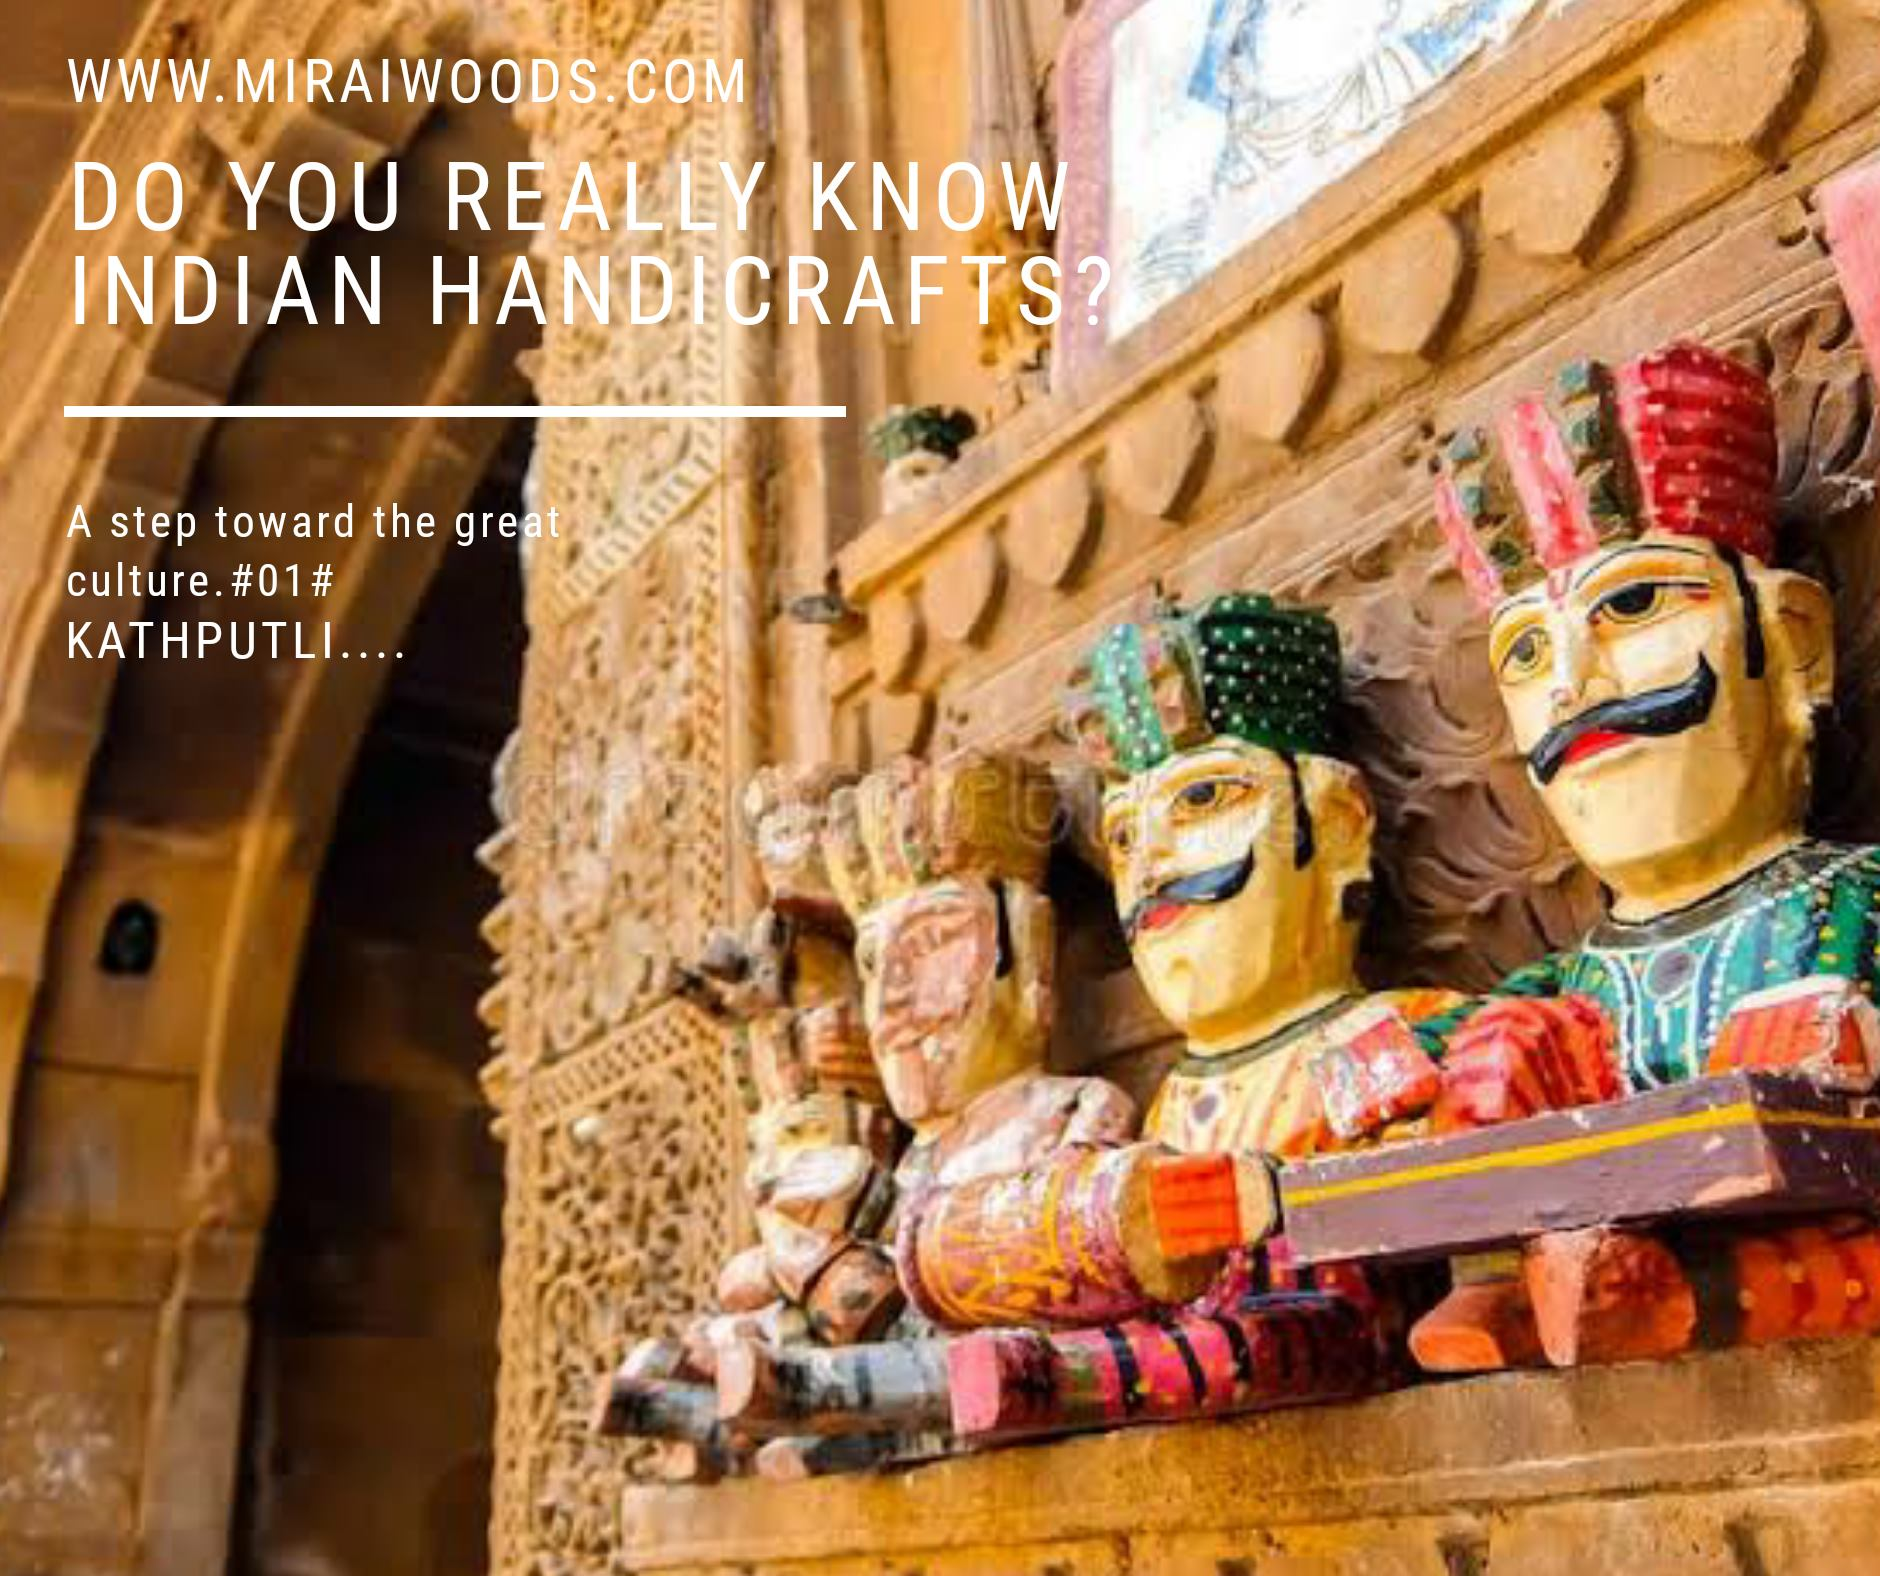 Do you really know Indian Handicrafts?